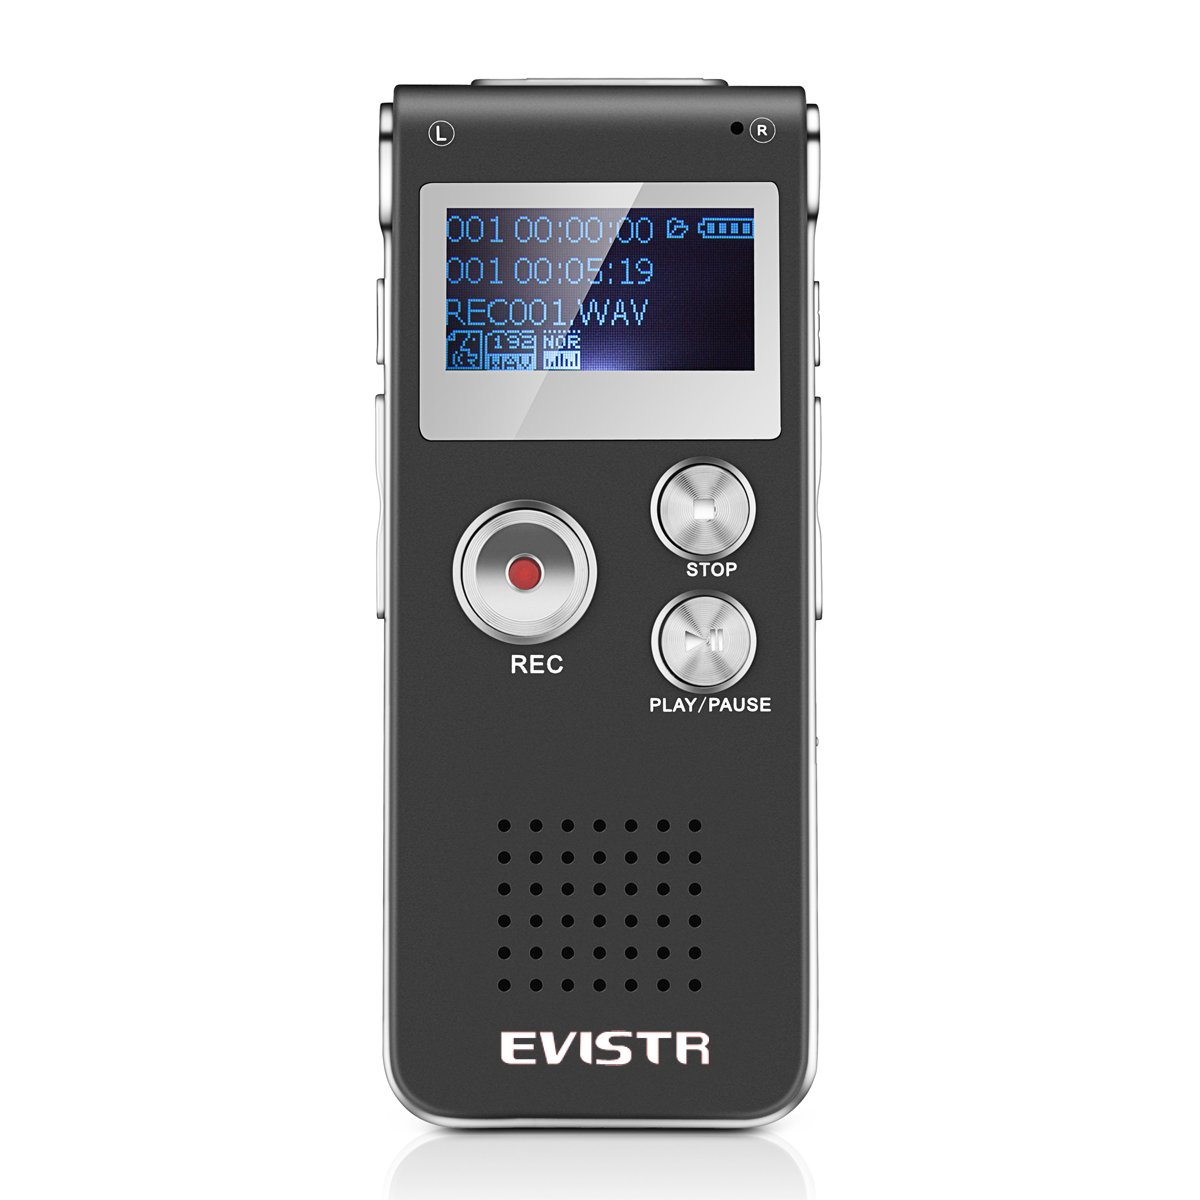 EVISTR Digital Voice Recorder L169-8GB / 560Hrs Capacity Digital Audio Recorder Dictaphone, Voice Activated Recorder with MP3 Player, Built-in Speaker